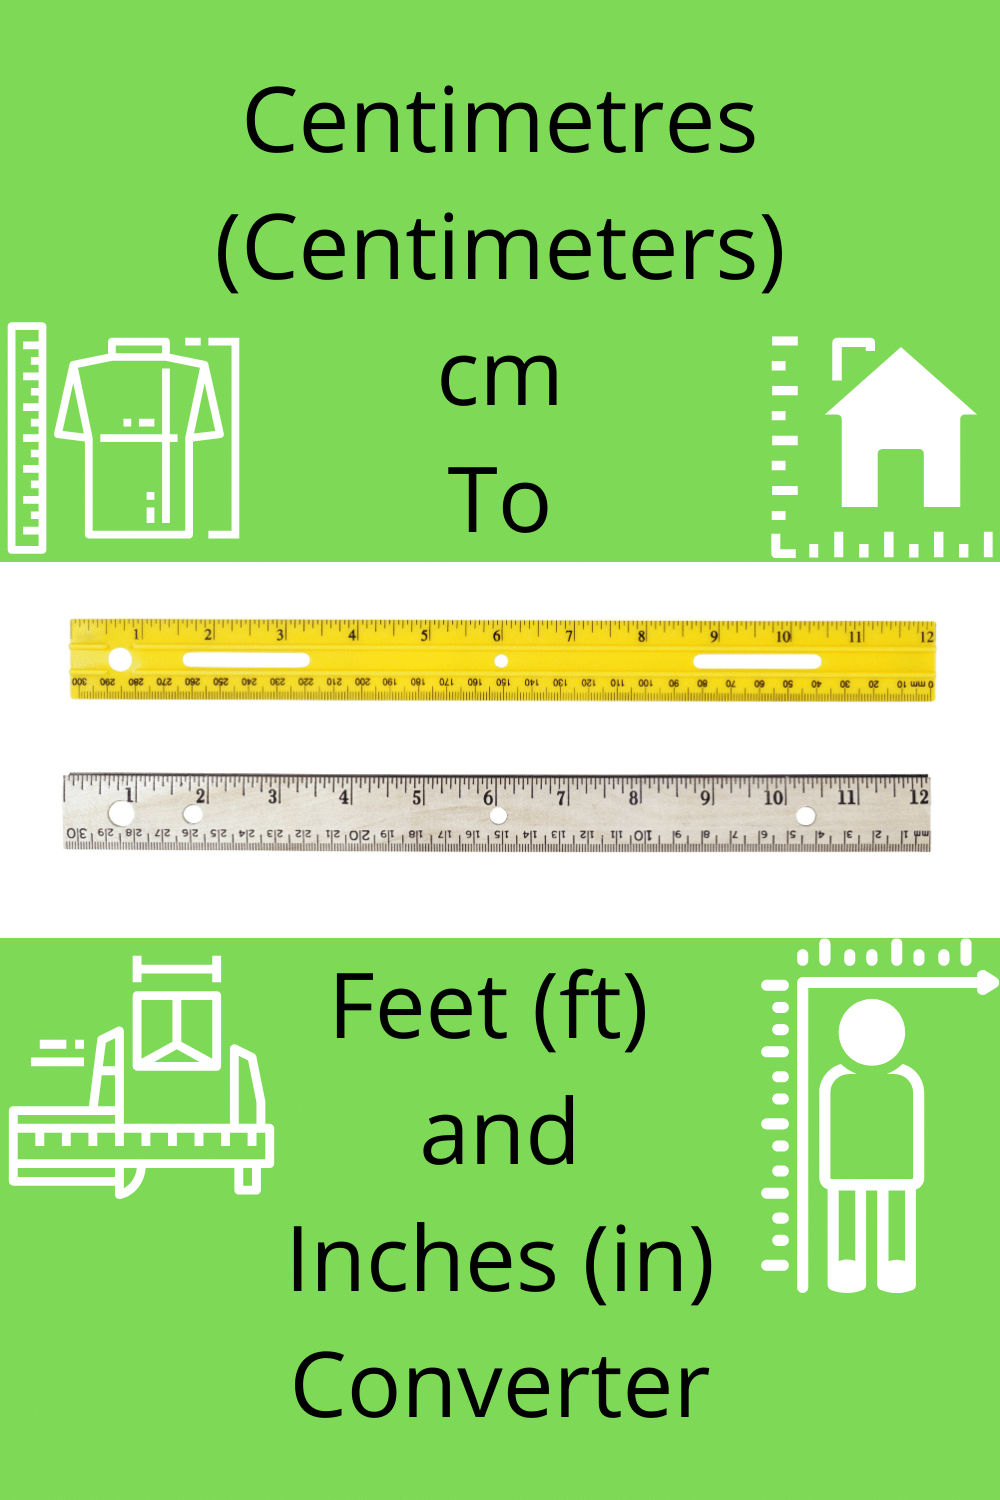 Centimetres Cm To Feet Ft And Inches In Converter Cm To Inches Conversion Inch Feet Converter